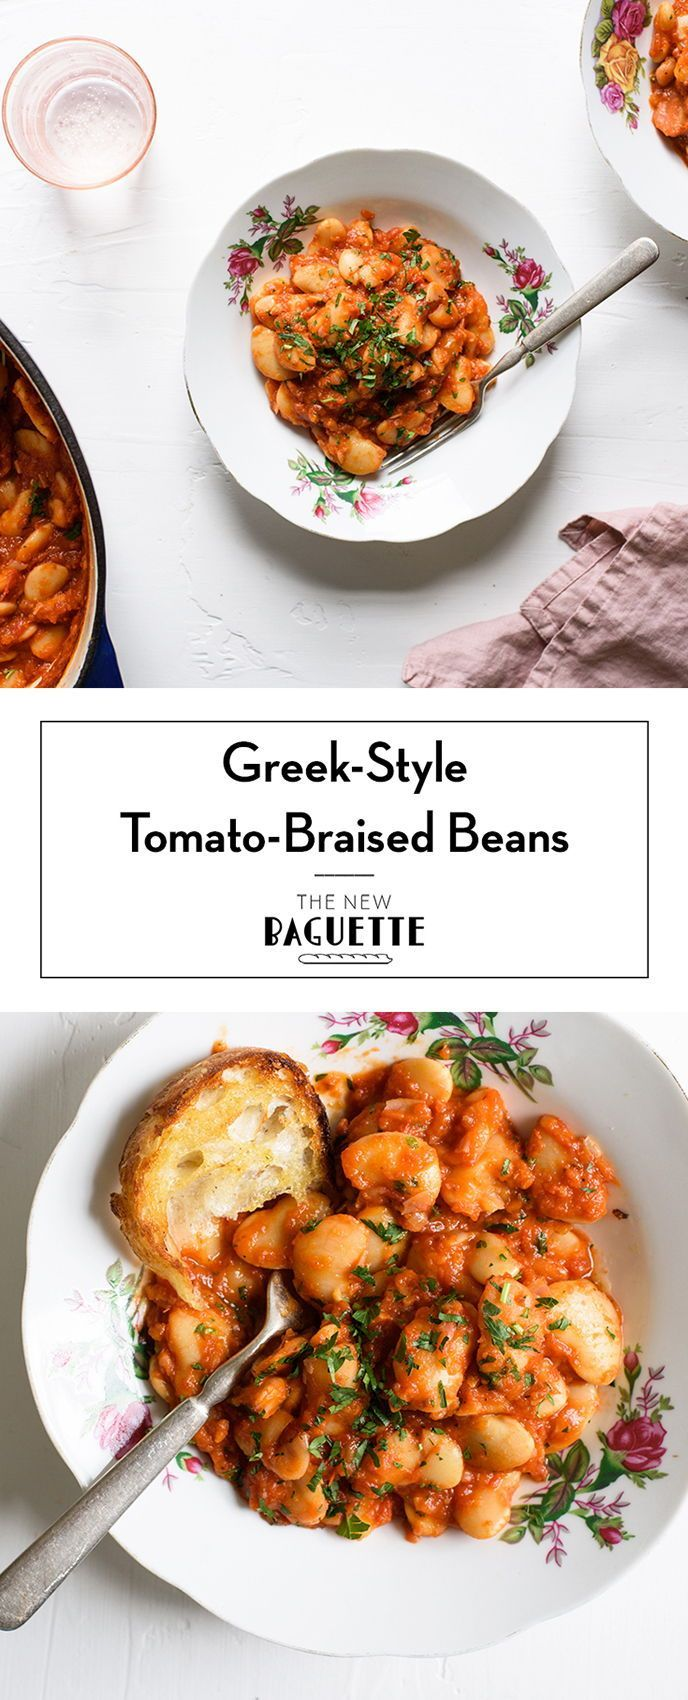 Braised Beans With Tomato Sauce And Oregano